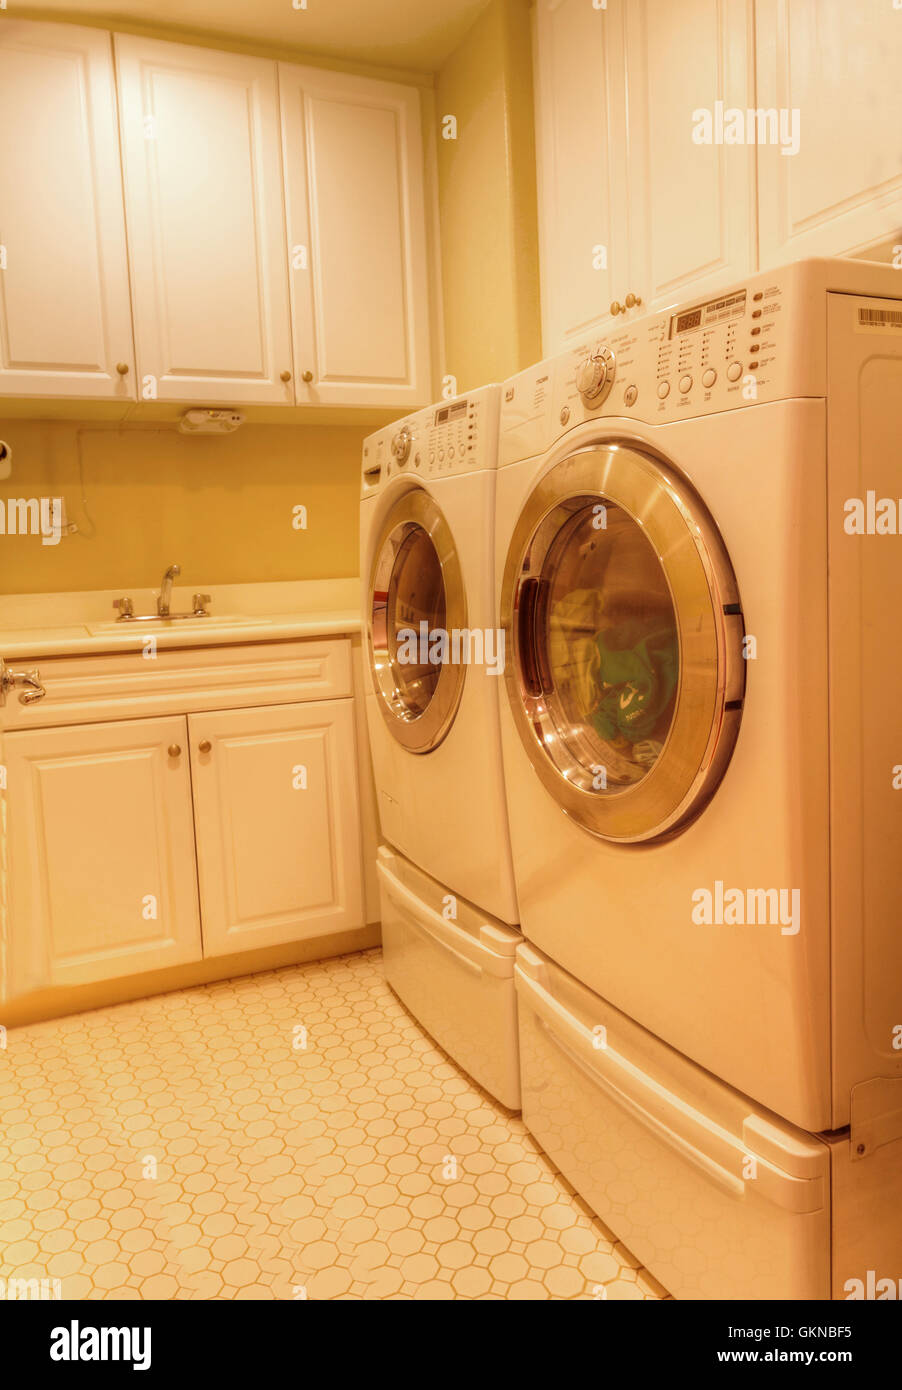 Laundry room cabinets irvine ca - Irvine Ca Usa August 19 2016 Small Laundry Room With Washer Dryer Recessed Lighting Tile Floors And Feng Shui Decor And